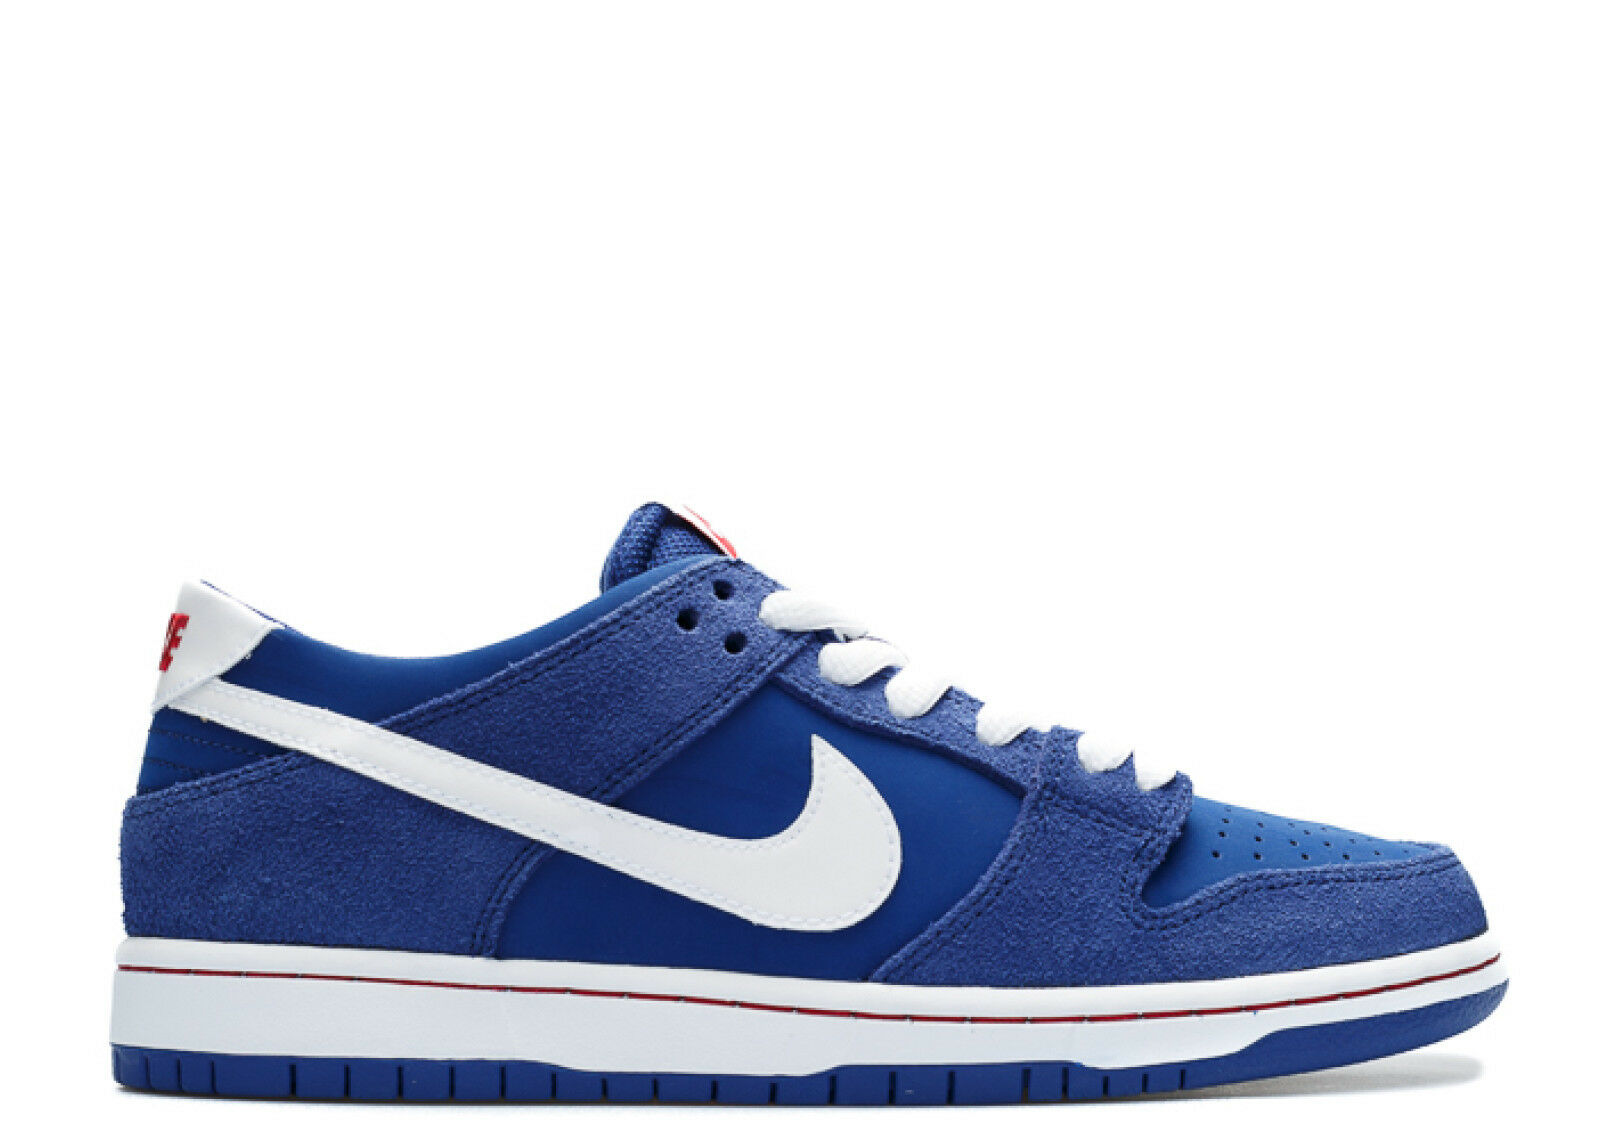 Nike DUNK LOW PRO IW Deep Royal White Gym Red 819674-416 (587)  Men's Shoes